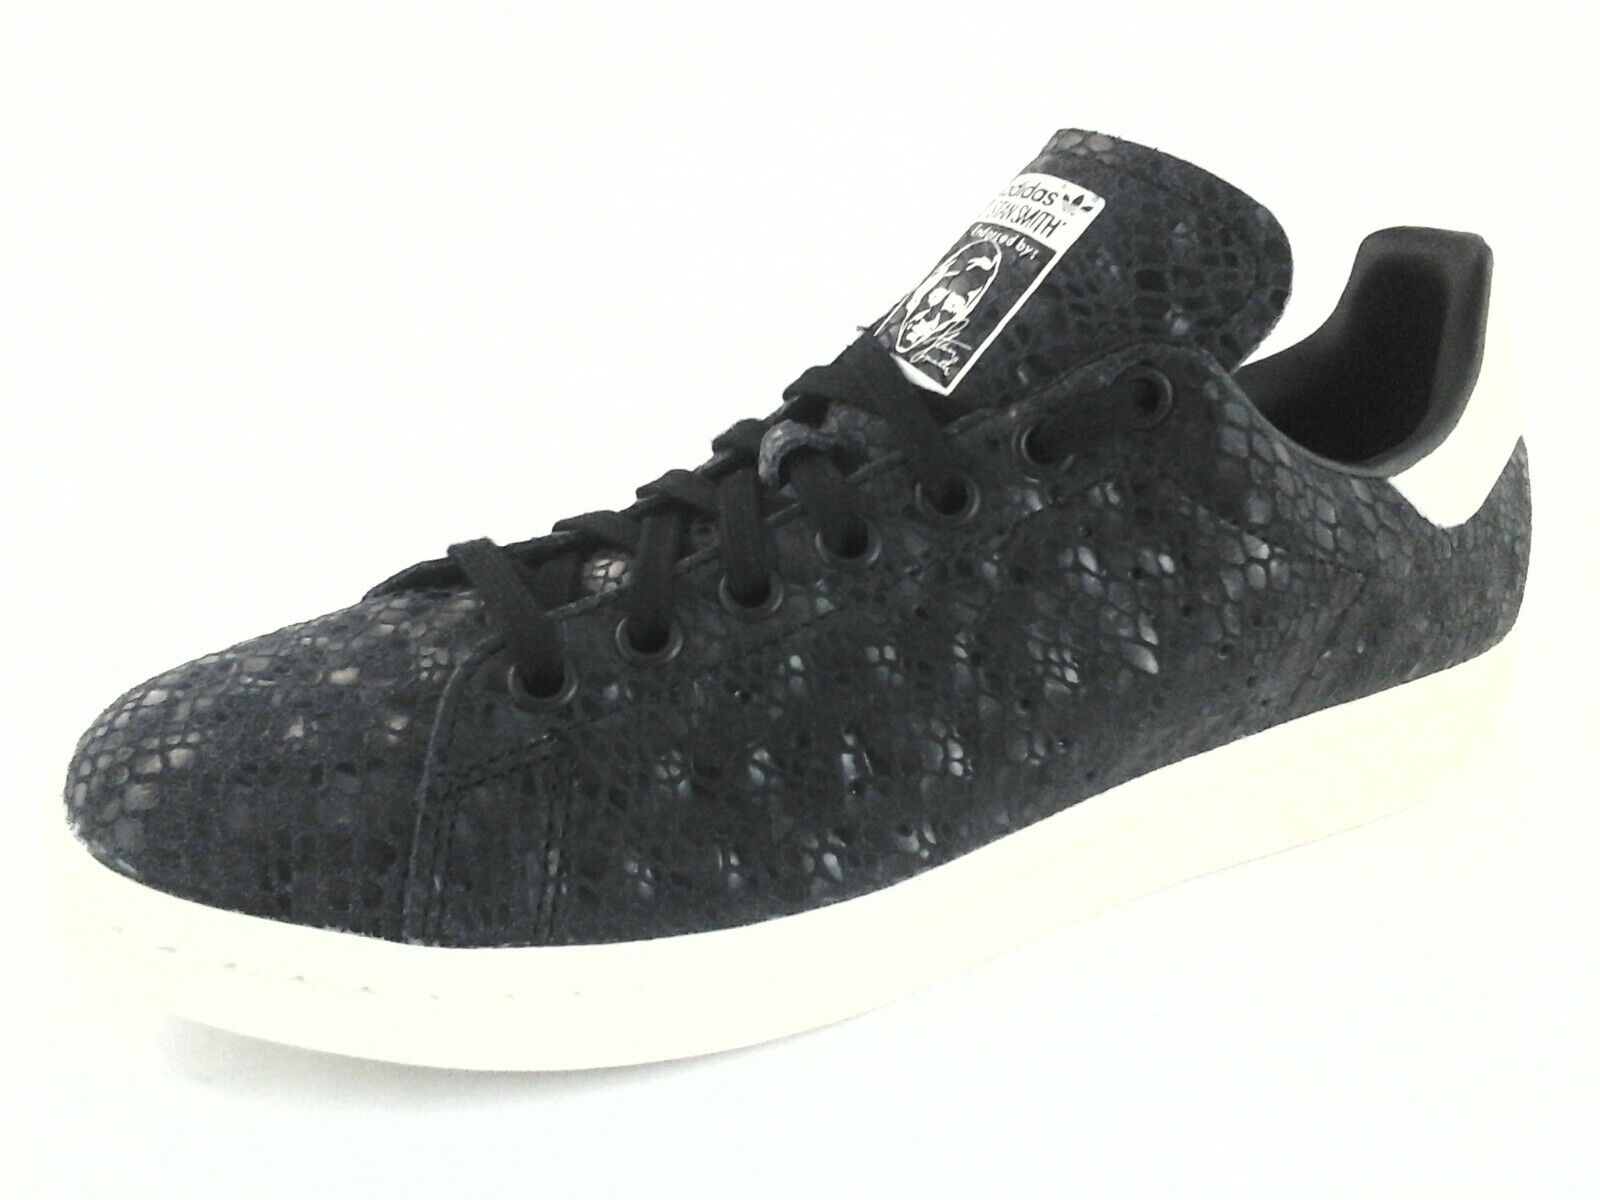 Adidas Stan Smith Womens Shoes S77344 Black Snake Emb. Leather US 8.5 /3